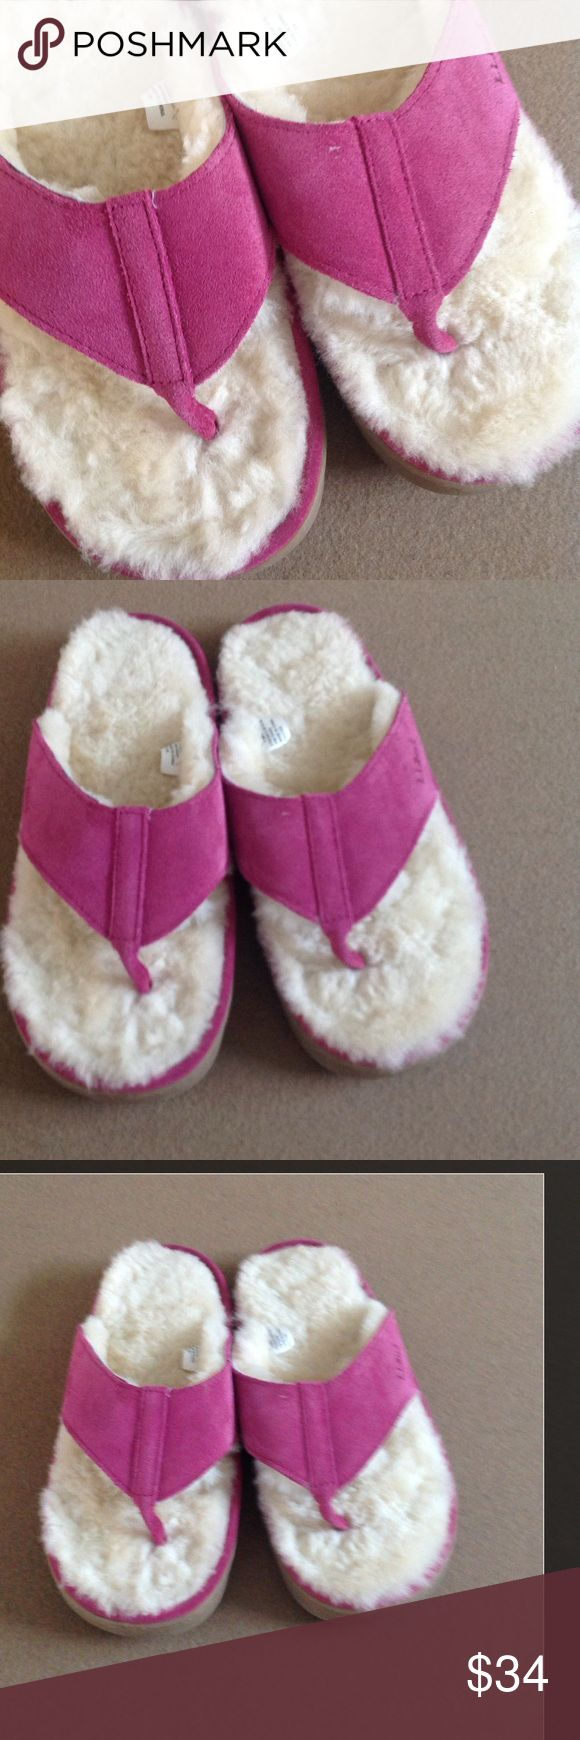 LL BEAN Wicked Good Shearling slippers. NEW Size 6 Beautiful fuchsia suede LL Bean Wicked Good real Shearling lined thong slippers/shoes. New, never worn. No box. Heavy rubber sole, can wear outside. Real leather. Size 6 LL Bean Shoes Flats & Loafers